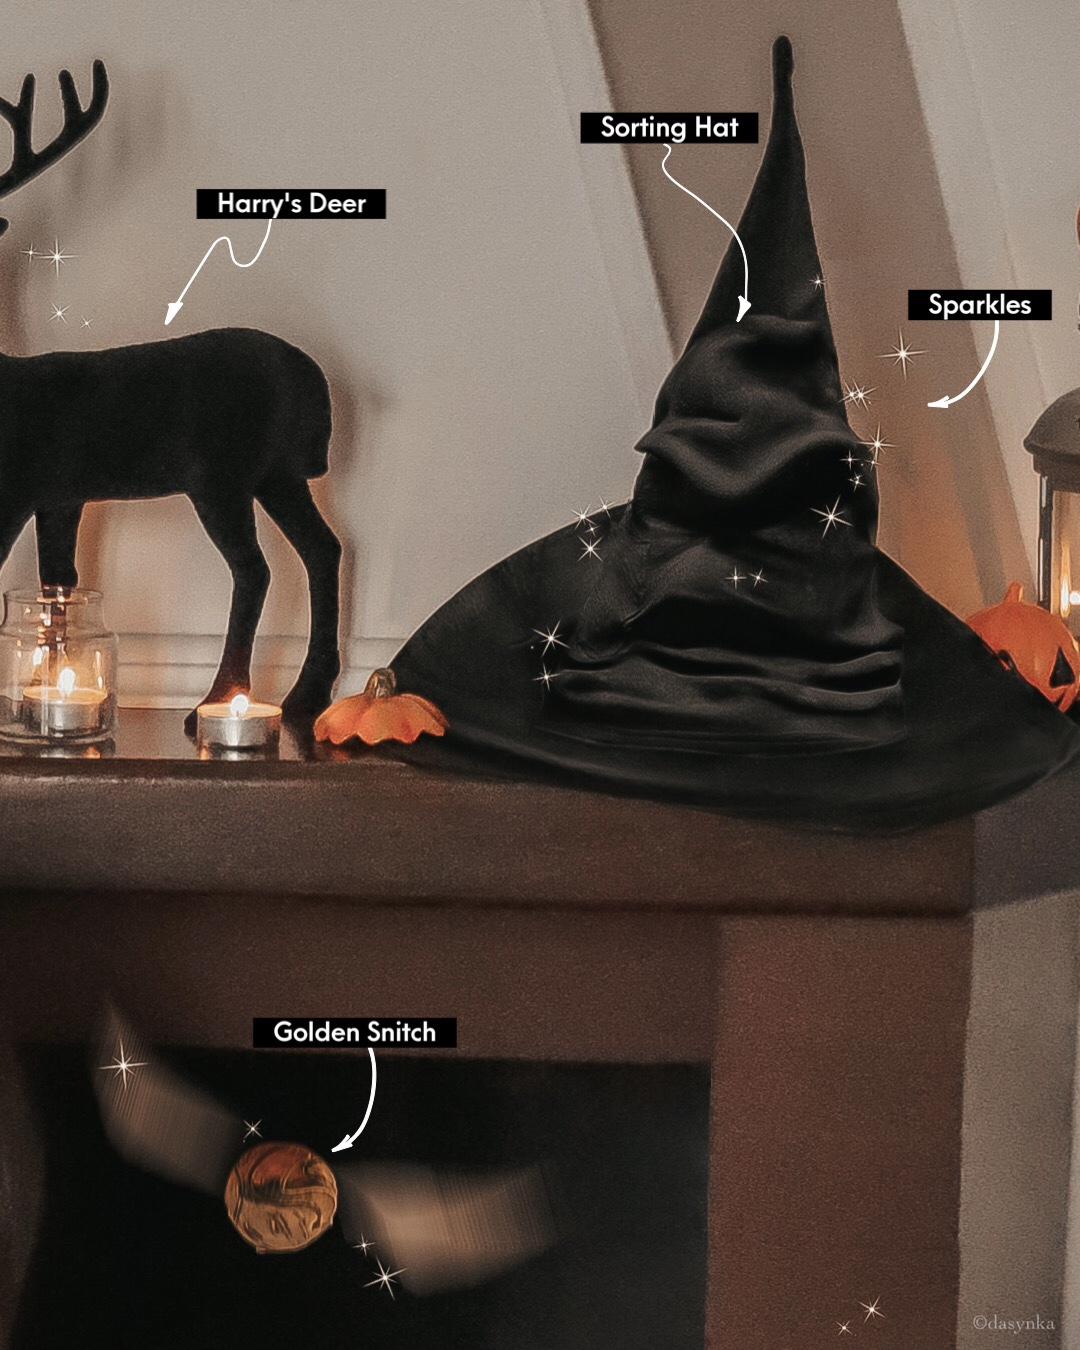 dasynka-fashion-blogger-blog-cosplay-cosplayer-disney-disneyland-halloween-make-up-costume-ideas-death-party-decorations-costumes-witch-harry-potter-hogwarts-aragog-forbidden-forest-dementor-voldemort-you-know-who-gryffindor-lumos-maxima-death-eater-wand-marauders-map-hedwig-sorting-hat-beedle-the-bard-pensieve-horcrux-deathly-hallows-pumpkin